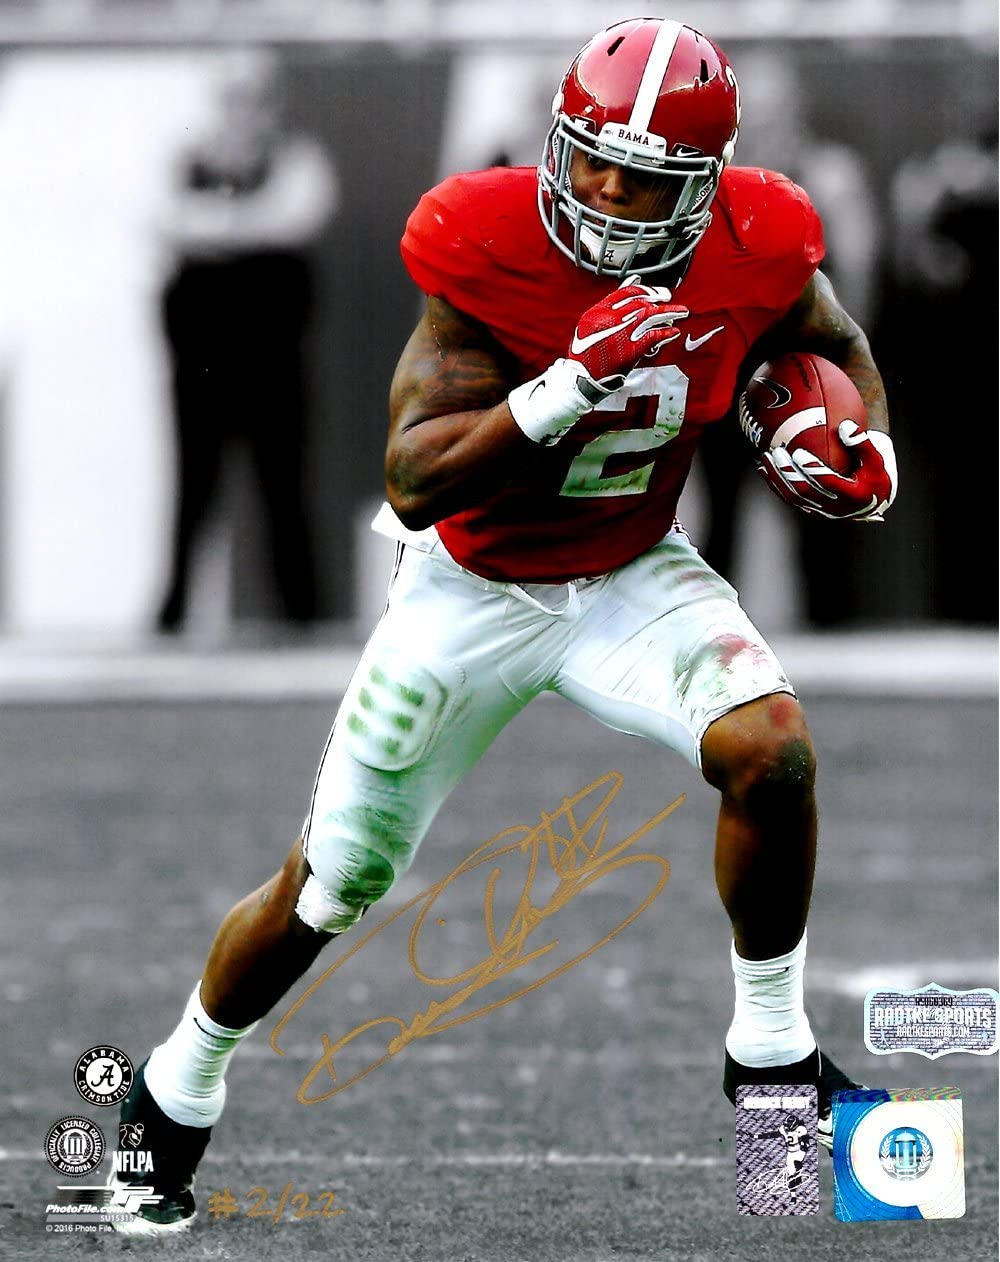 Derrick Henry Autographed/Signed Alabama Crimson Tide Spotlight 8x10 Photo - Red Jersey - Limited Edition 2 Of 22